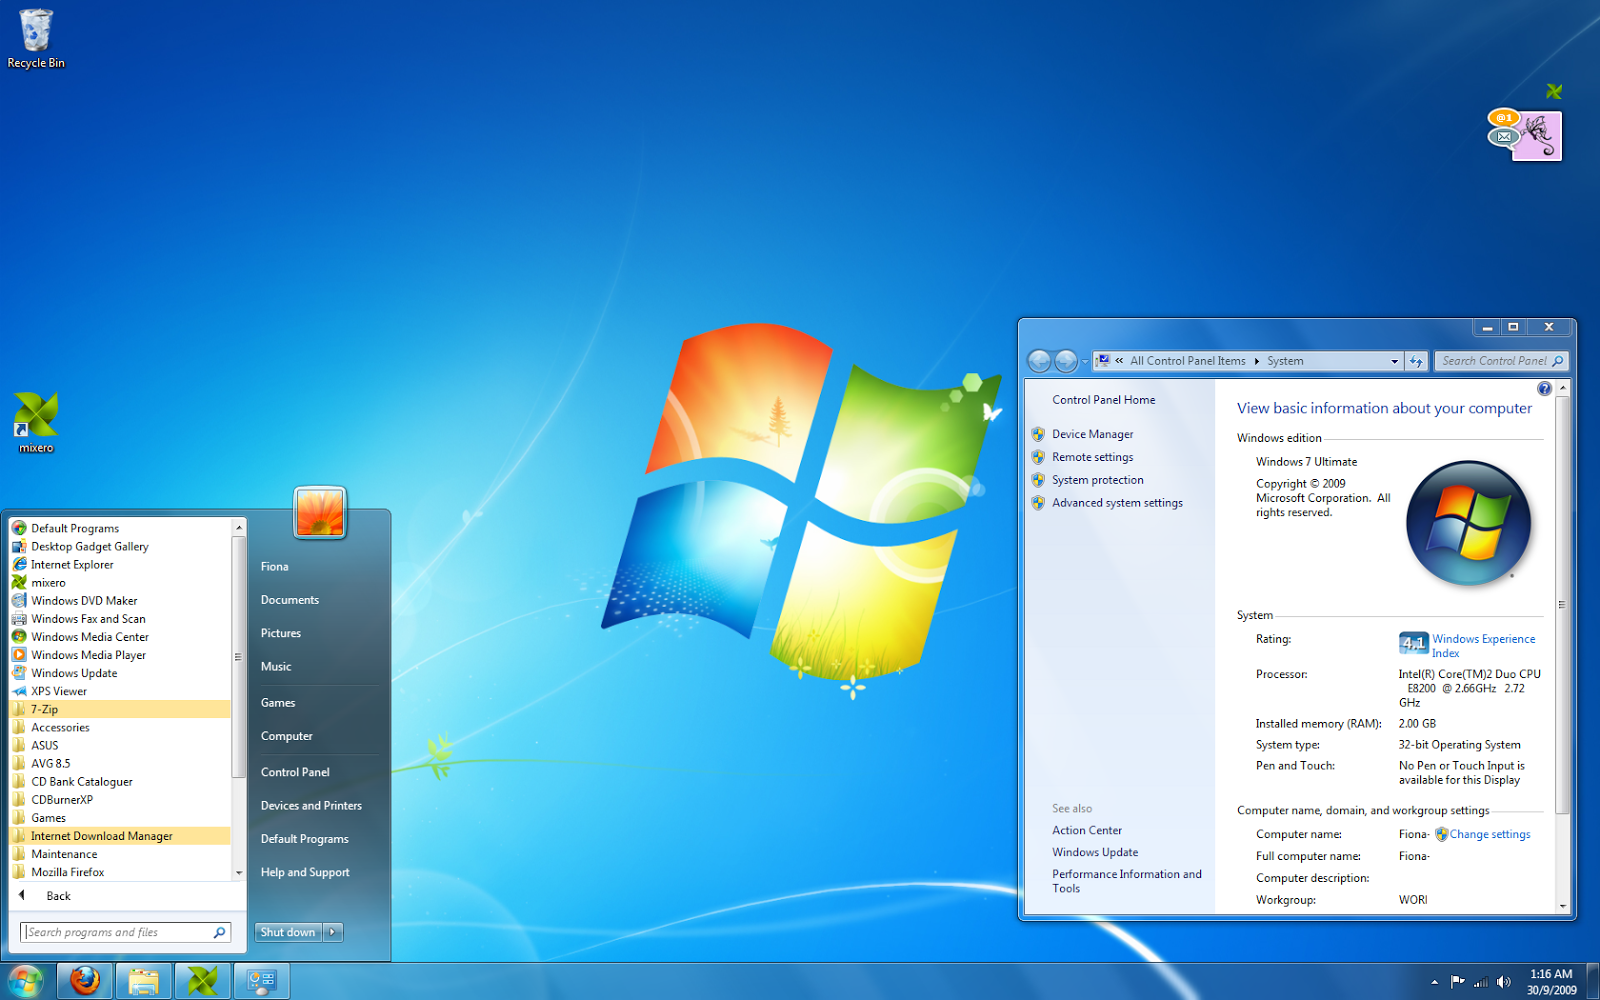 free download manager for windows 7 ultimate 64 bit